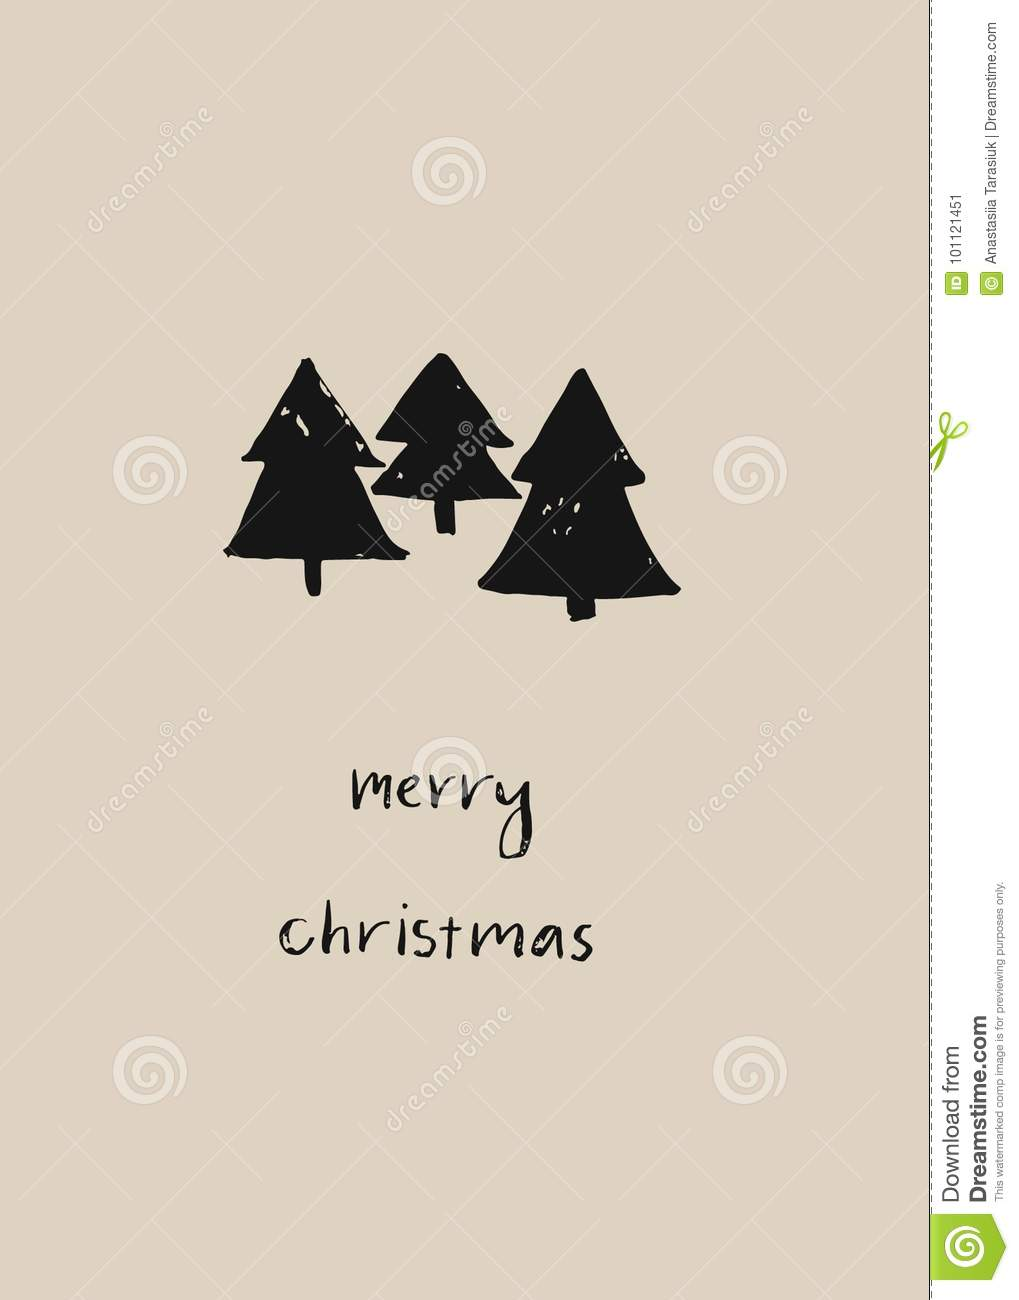 Merry christmas and happy new year holiday greeting card geometry download merry christmas and happy new year holiday greeting card geometry lines art deco m4hsunfo